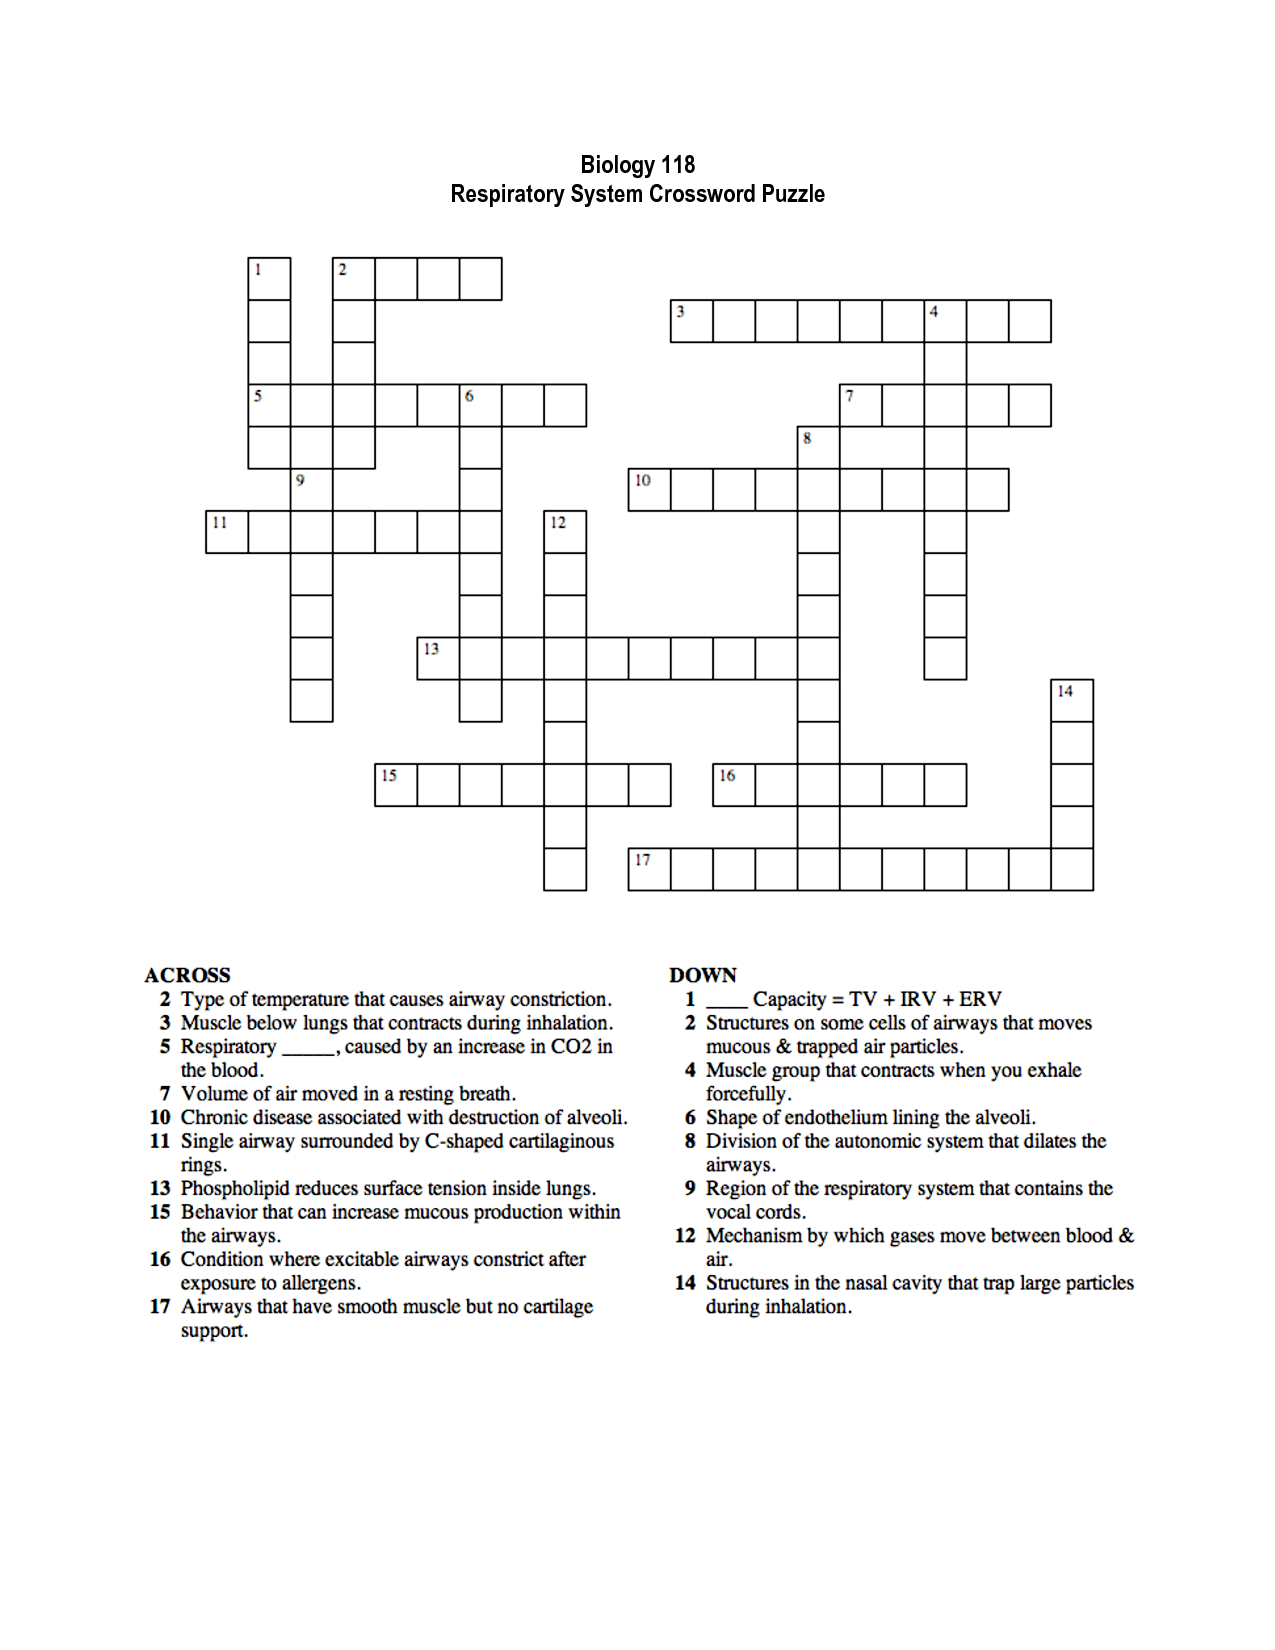 Respiratory System Crossword For Biology Classes